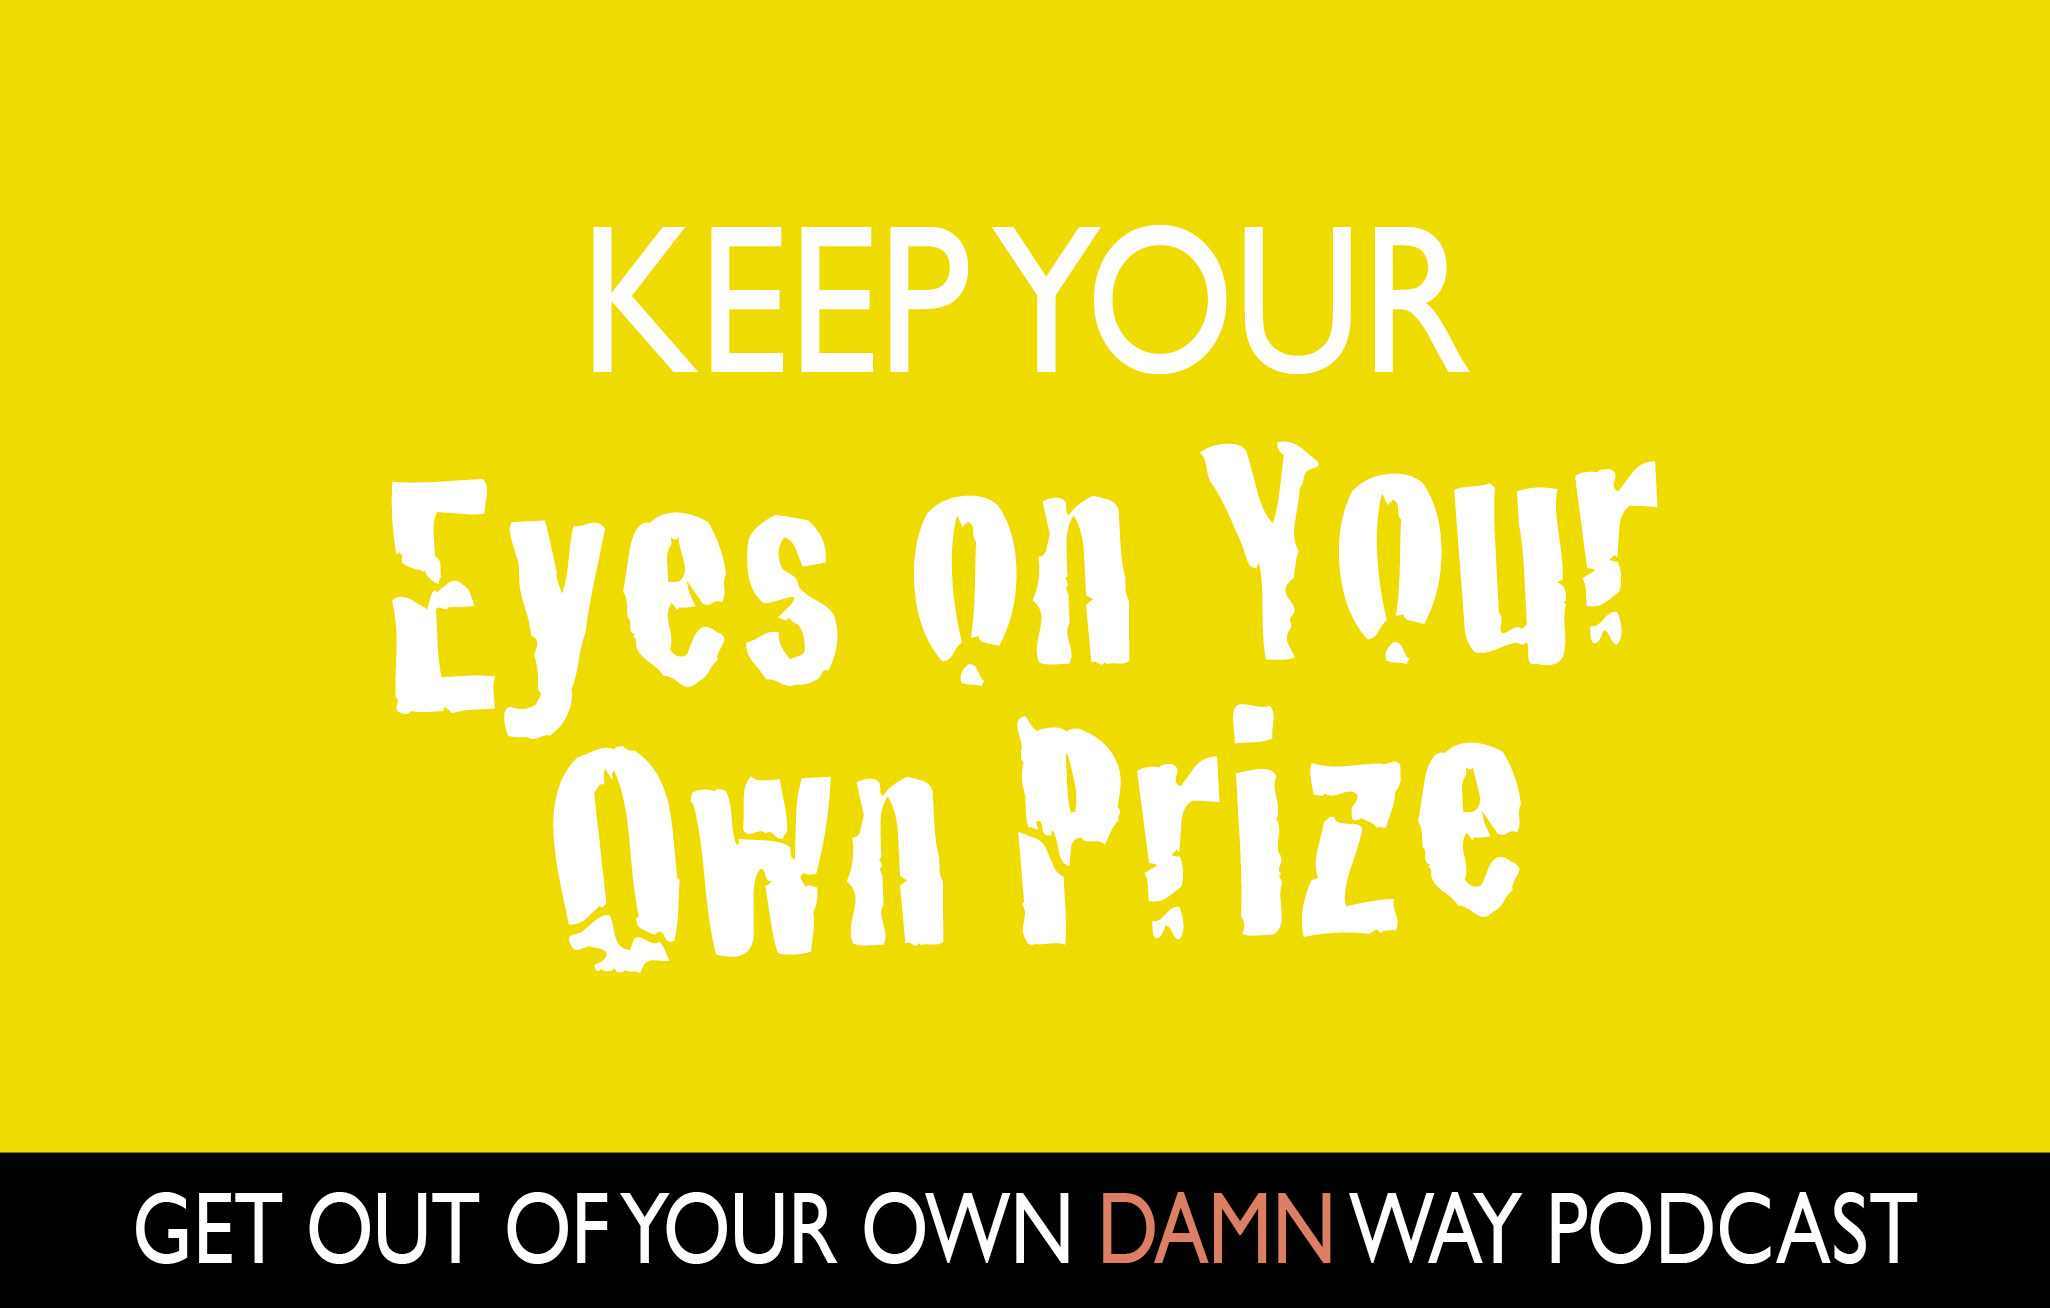 Keep Your Eyes on Your Own Prize